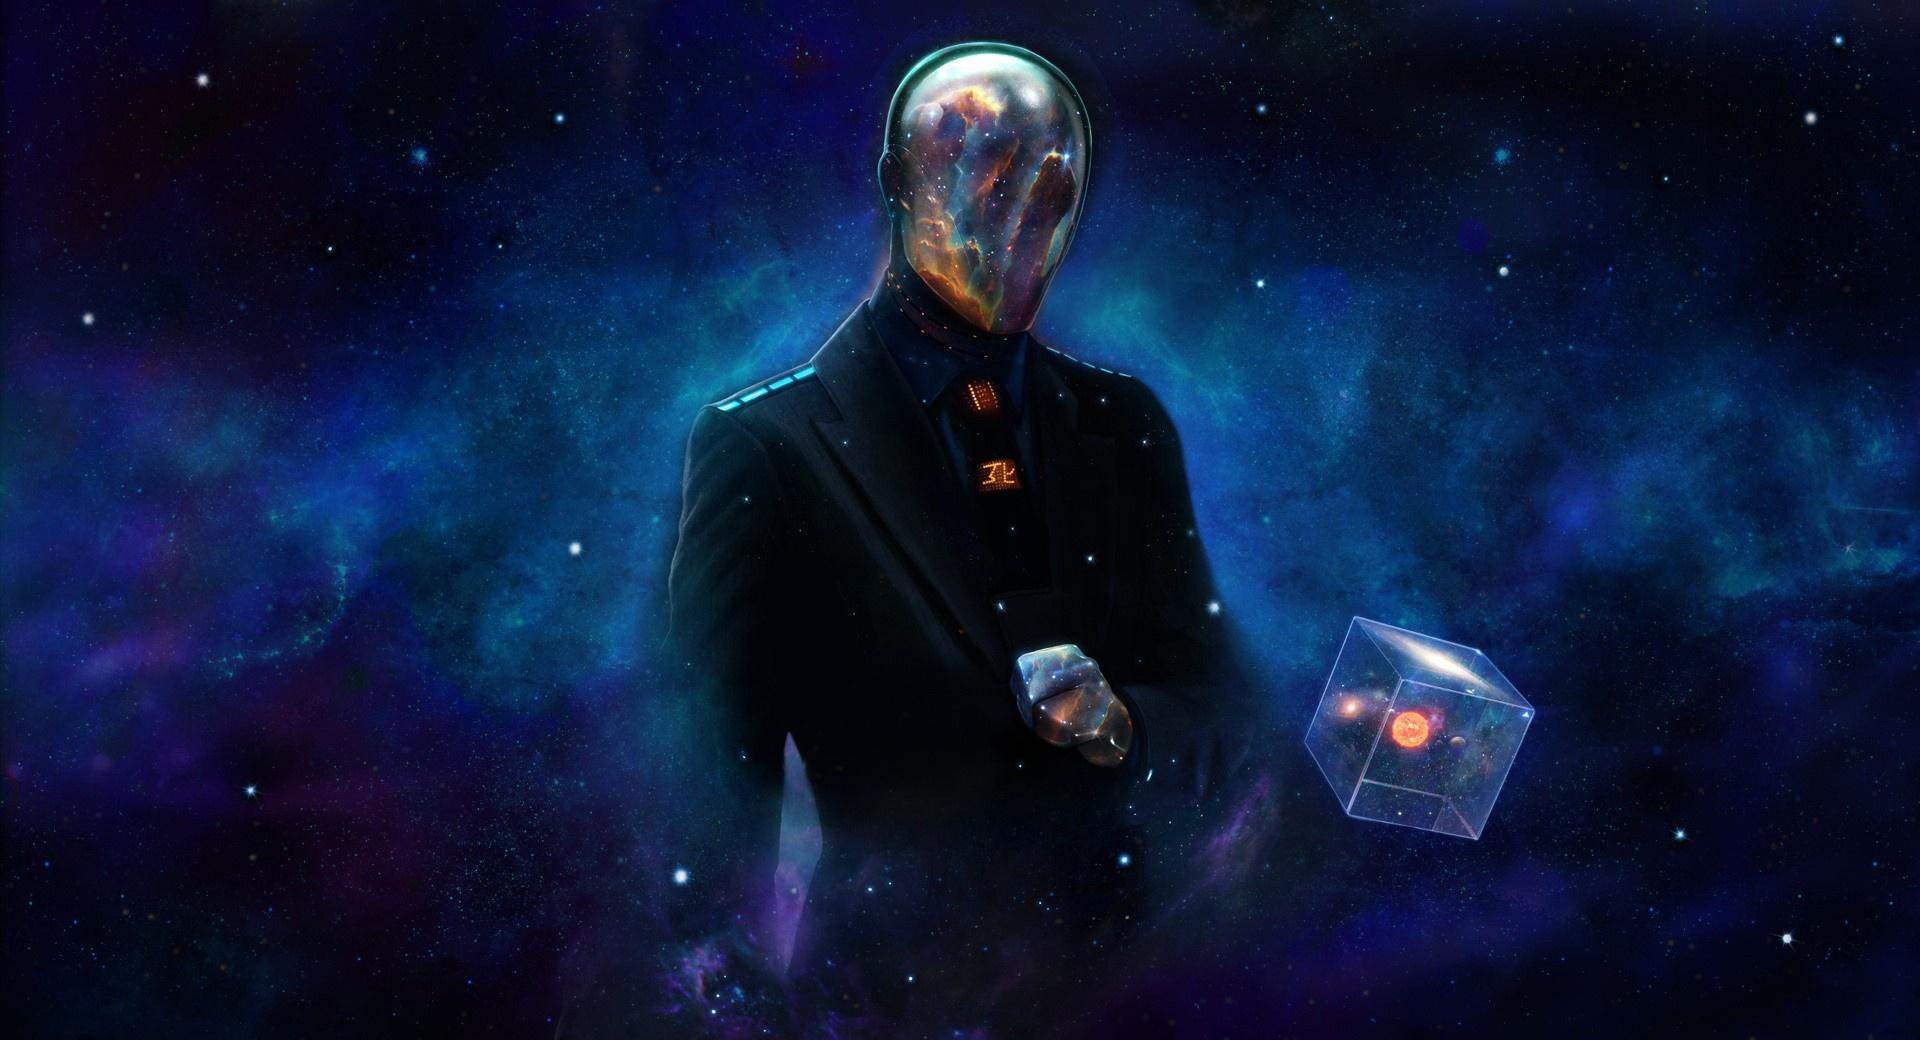 Galaxy Man wallpapers HD quality